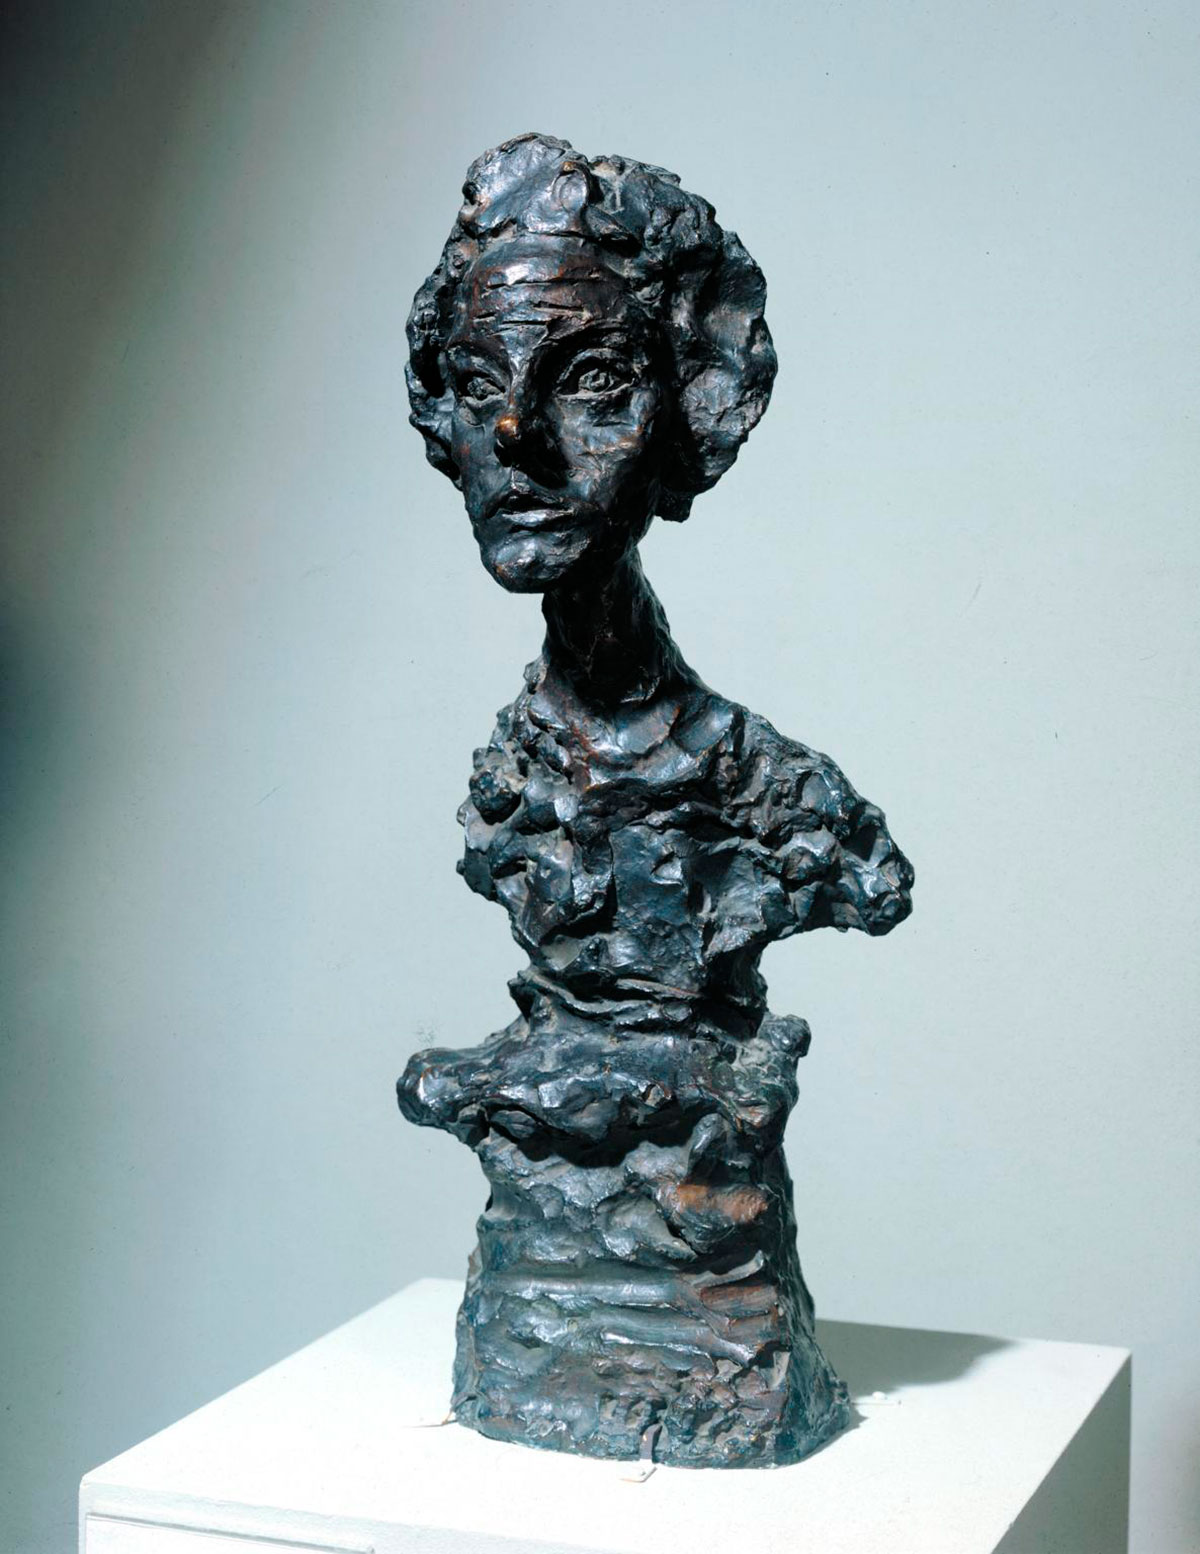 Bust of Annette IV 1962, cast 1965 © The Estate of Alberto Giacometti (Fondation Giacometti, Paris and ADAGP, Paris), licensed in the UK by ACS and DACS, London 2017